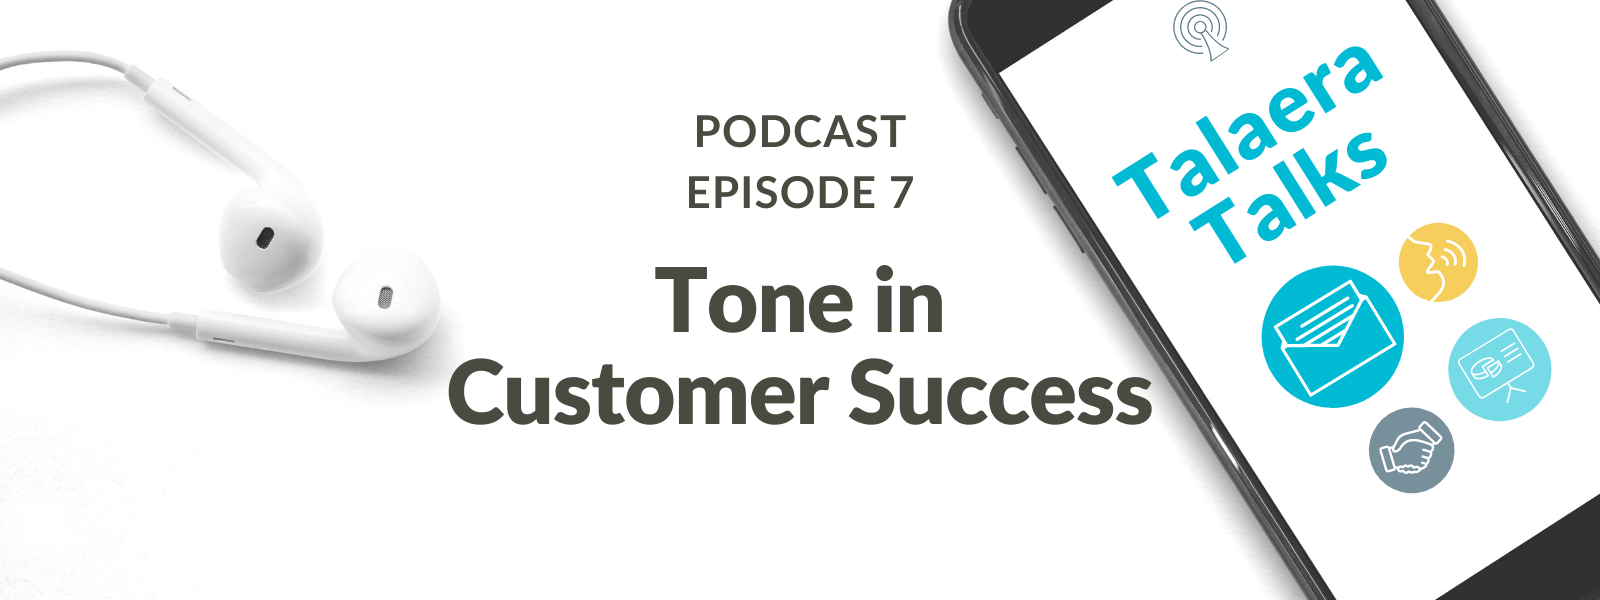 This Is Why Your Tone in English Matters In Customer Success [Podcast]